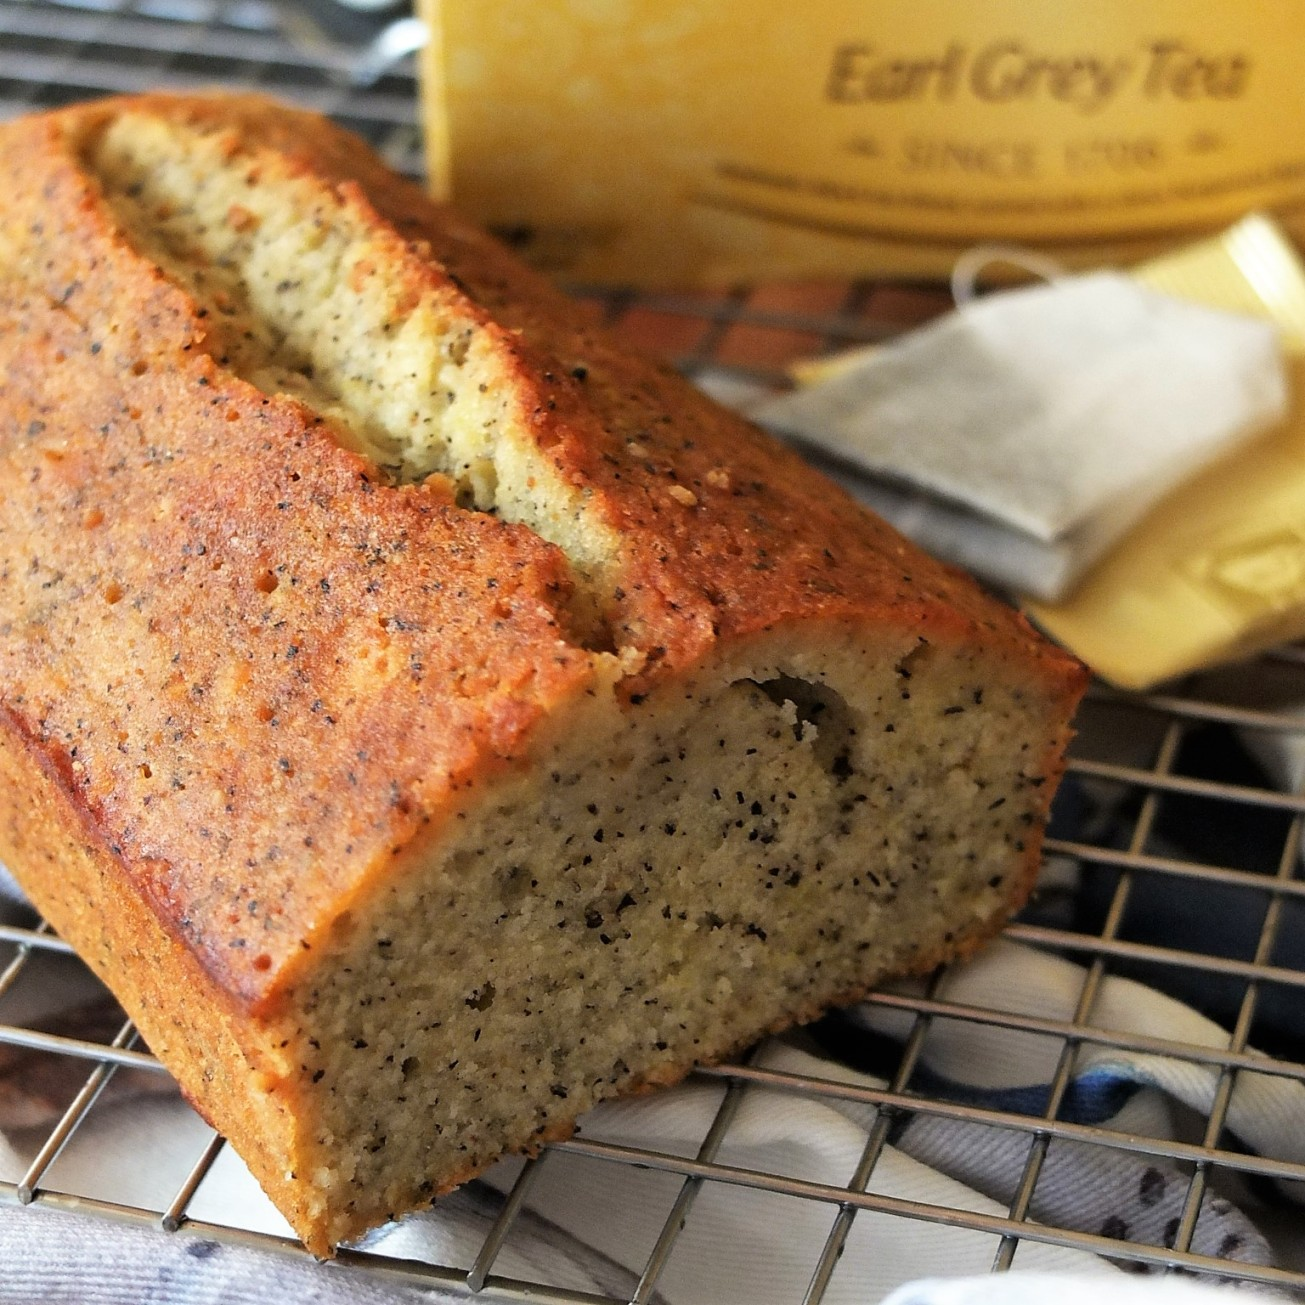 Earl grey and lemon loaf cake